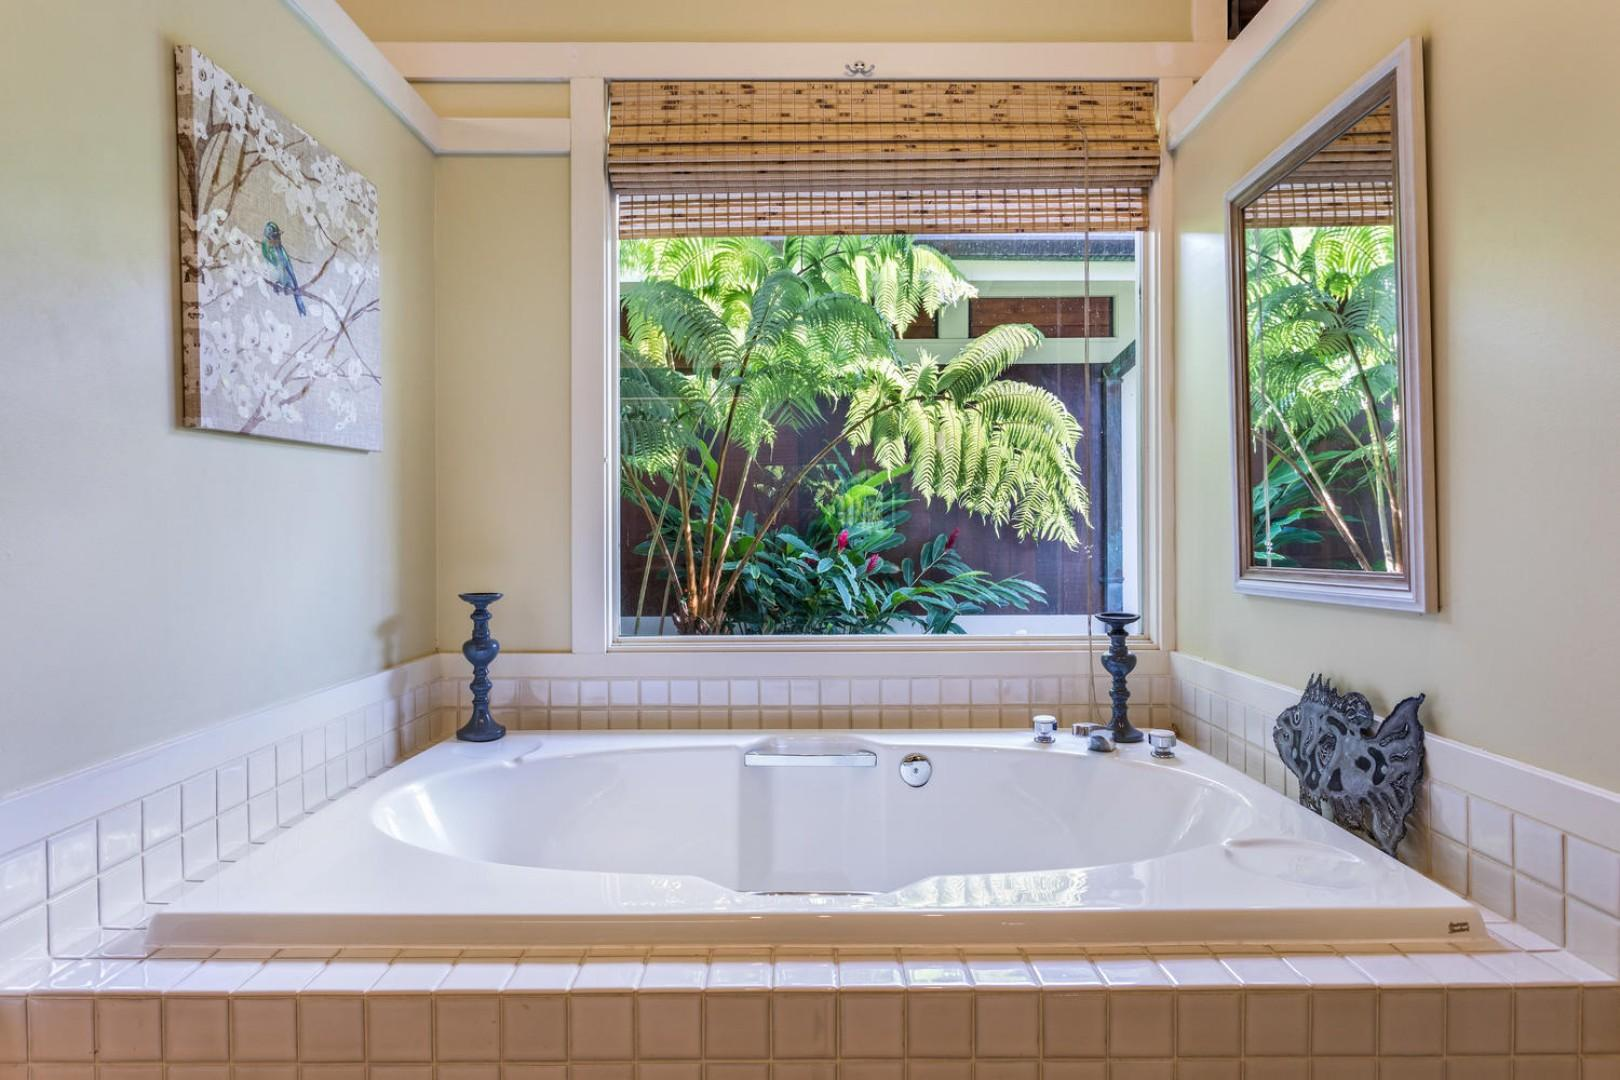 Master bathroom: Another great place to relax.